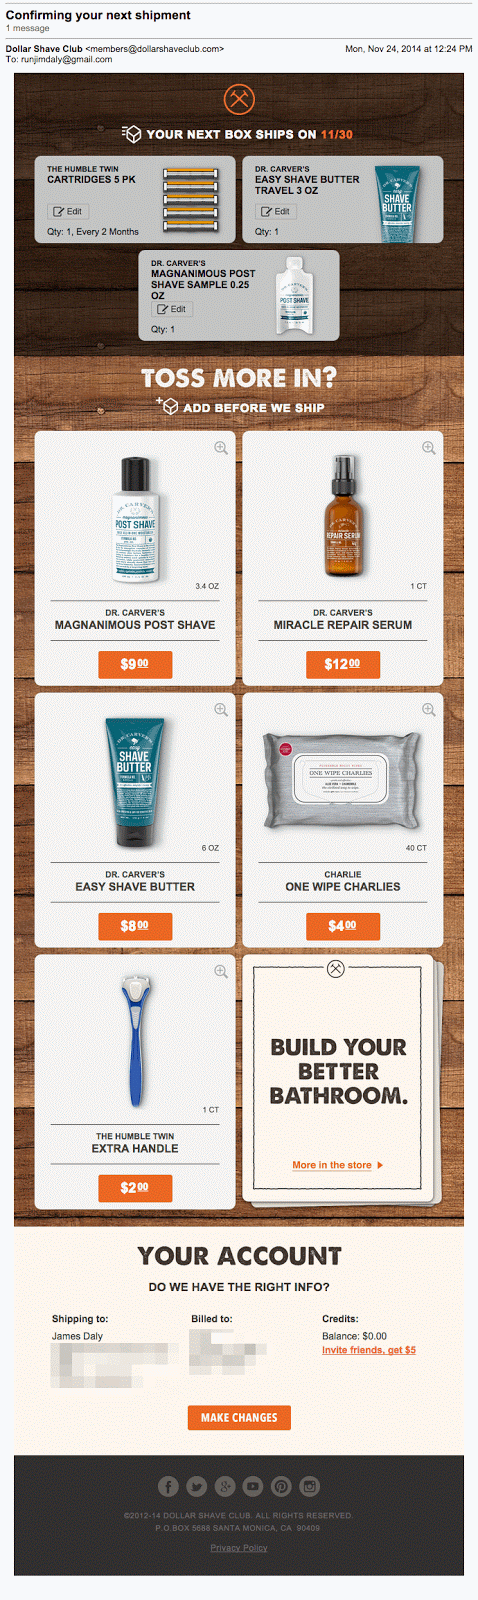 Dollar Shave Club Upsell Email